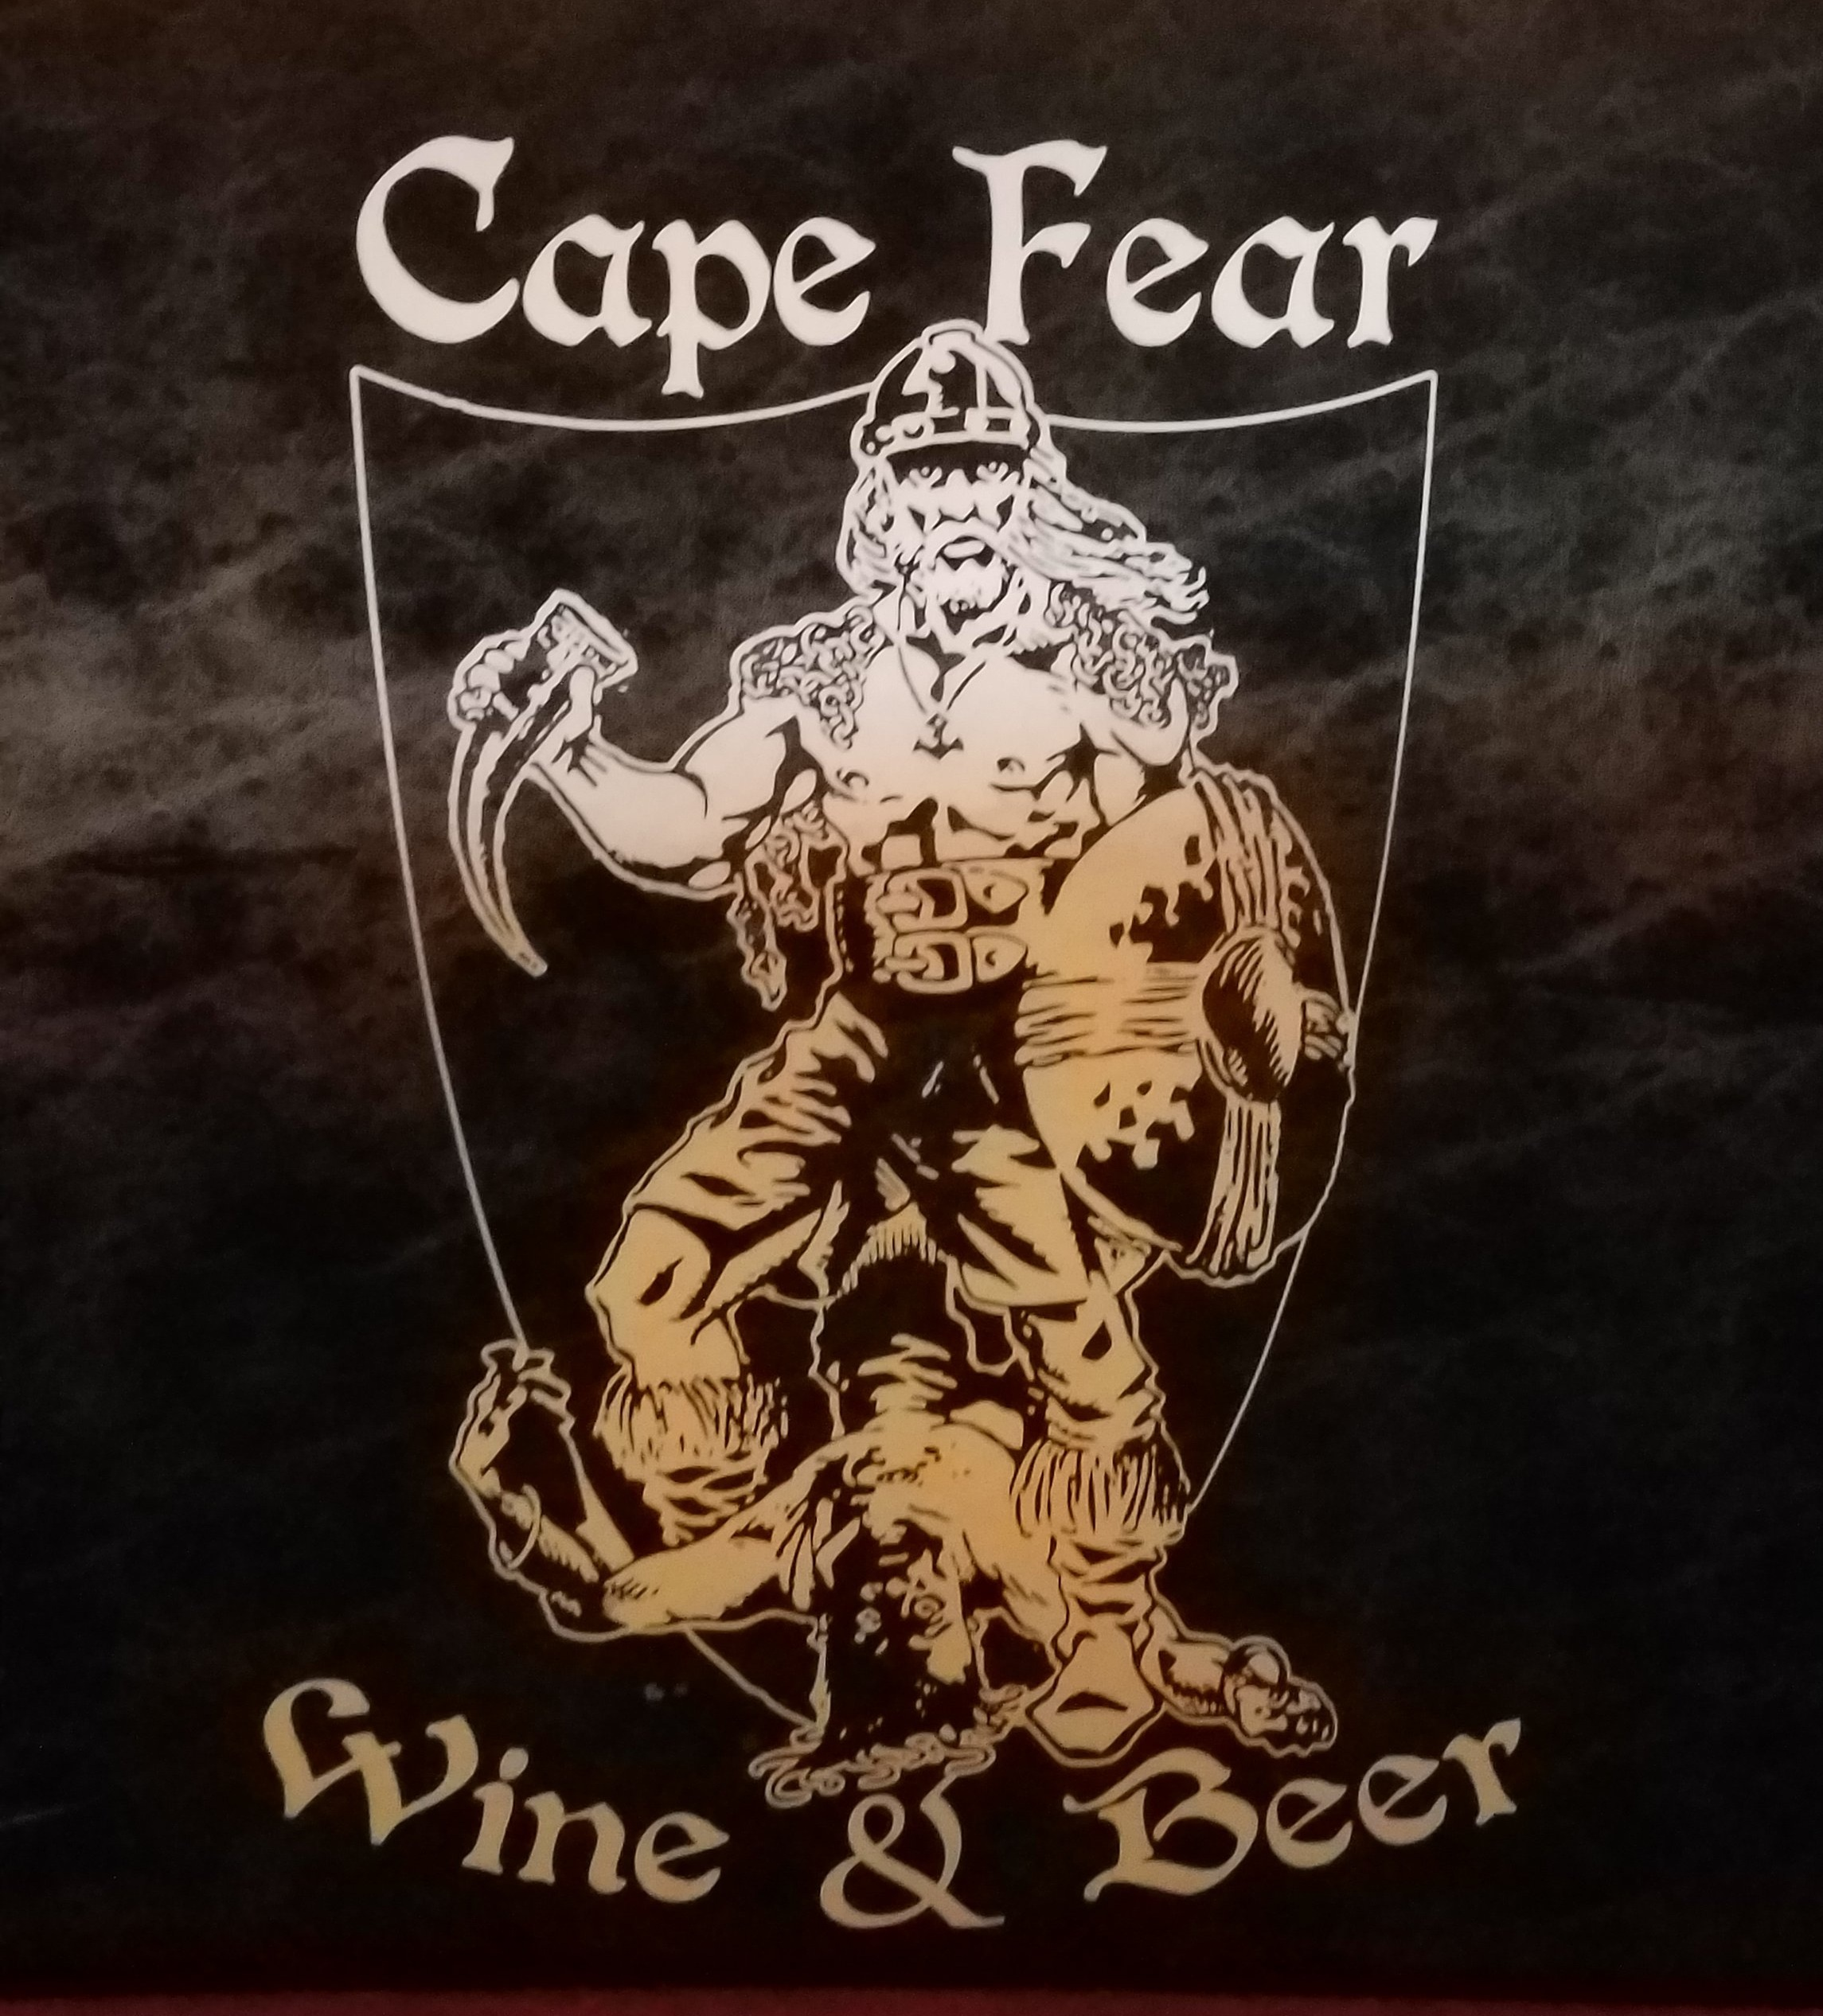 They fear no wine or beer because it is so hard to find a liquor store in the south!